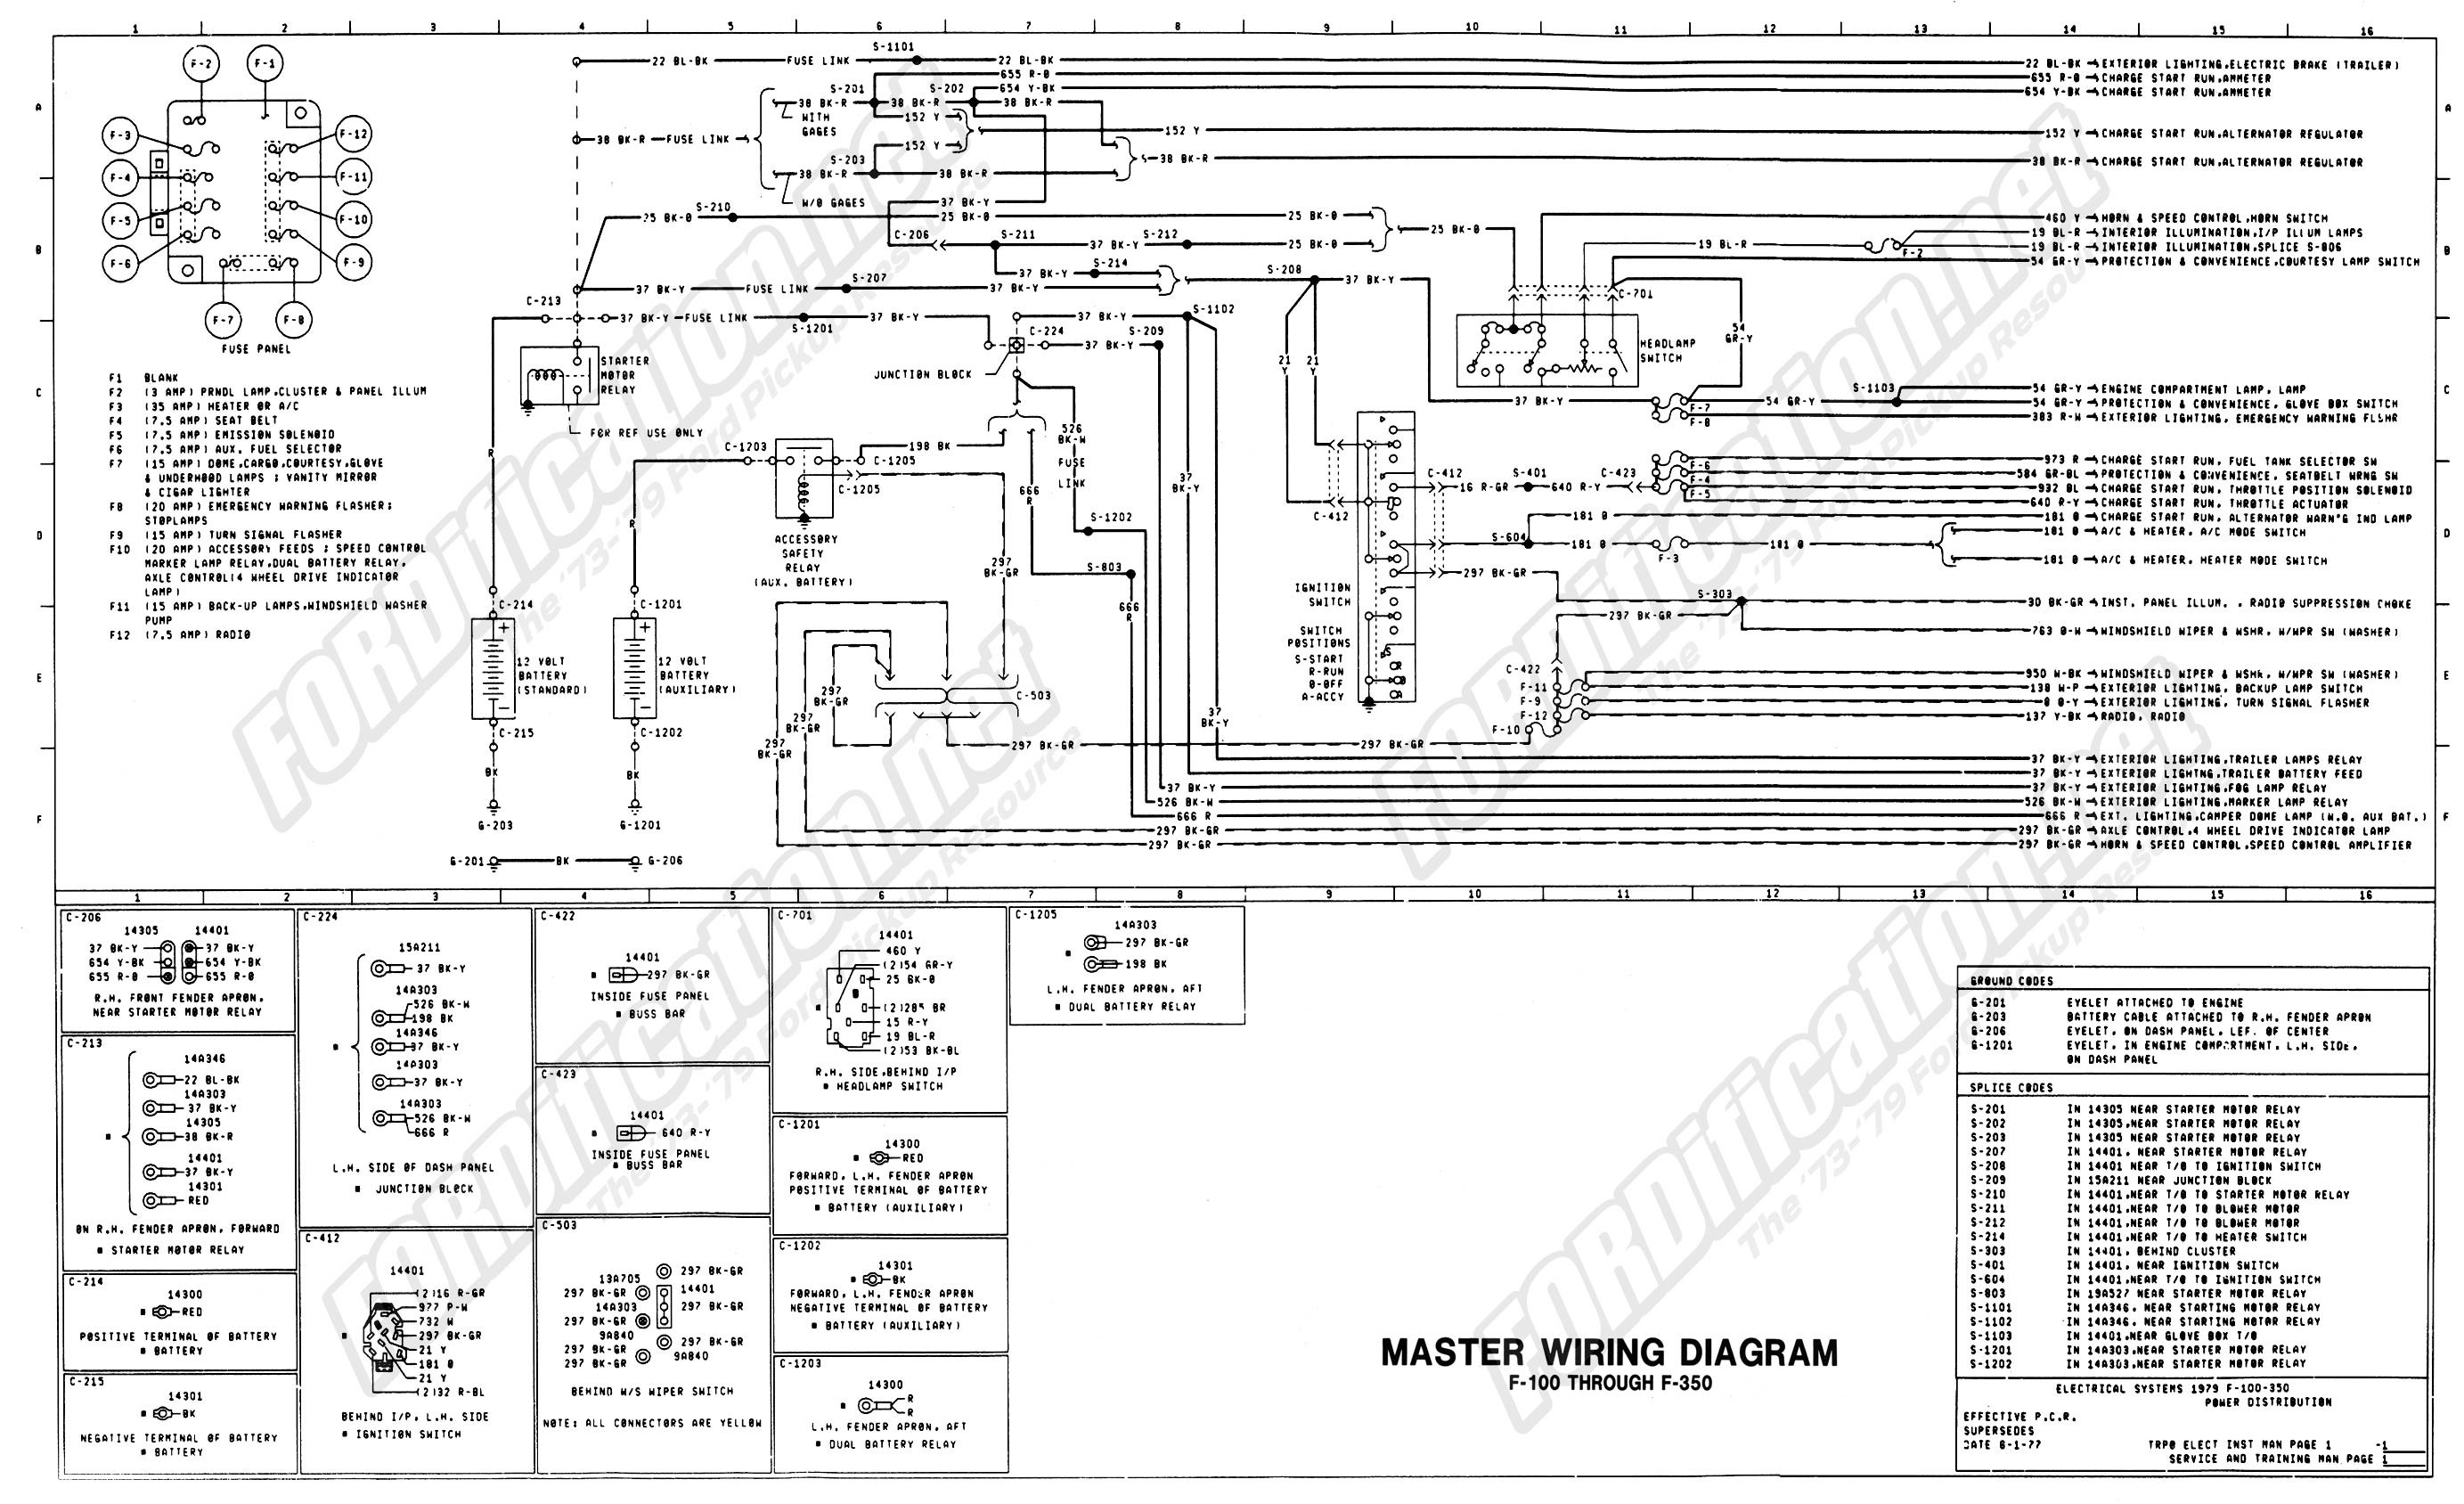 1969 Mack Truck Wiring - Wiring Diagram Verified Mack Ch Truck Wiring Diagram on